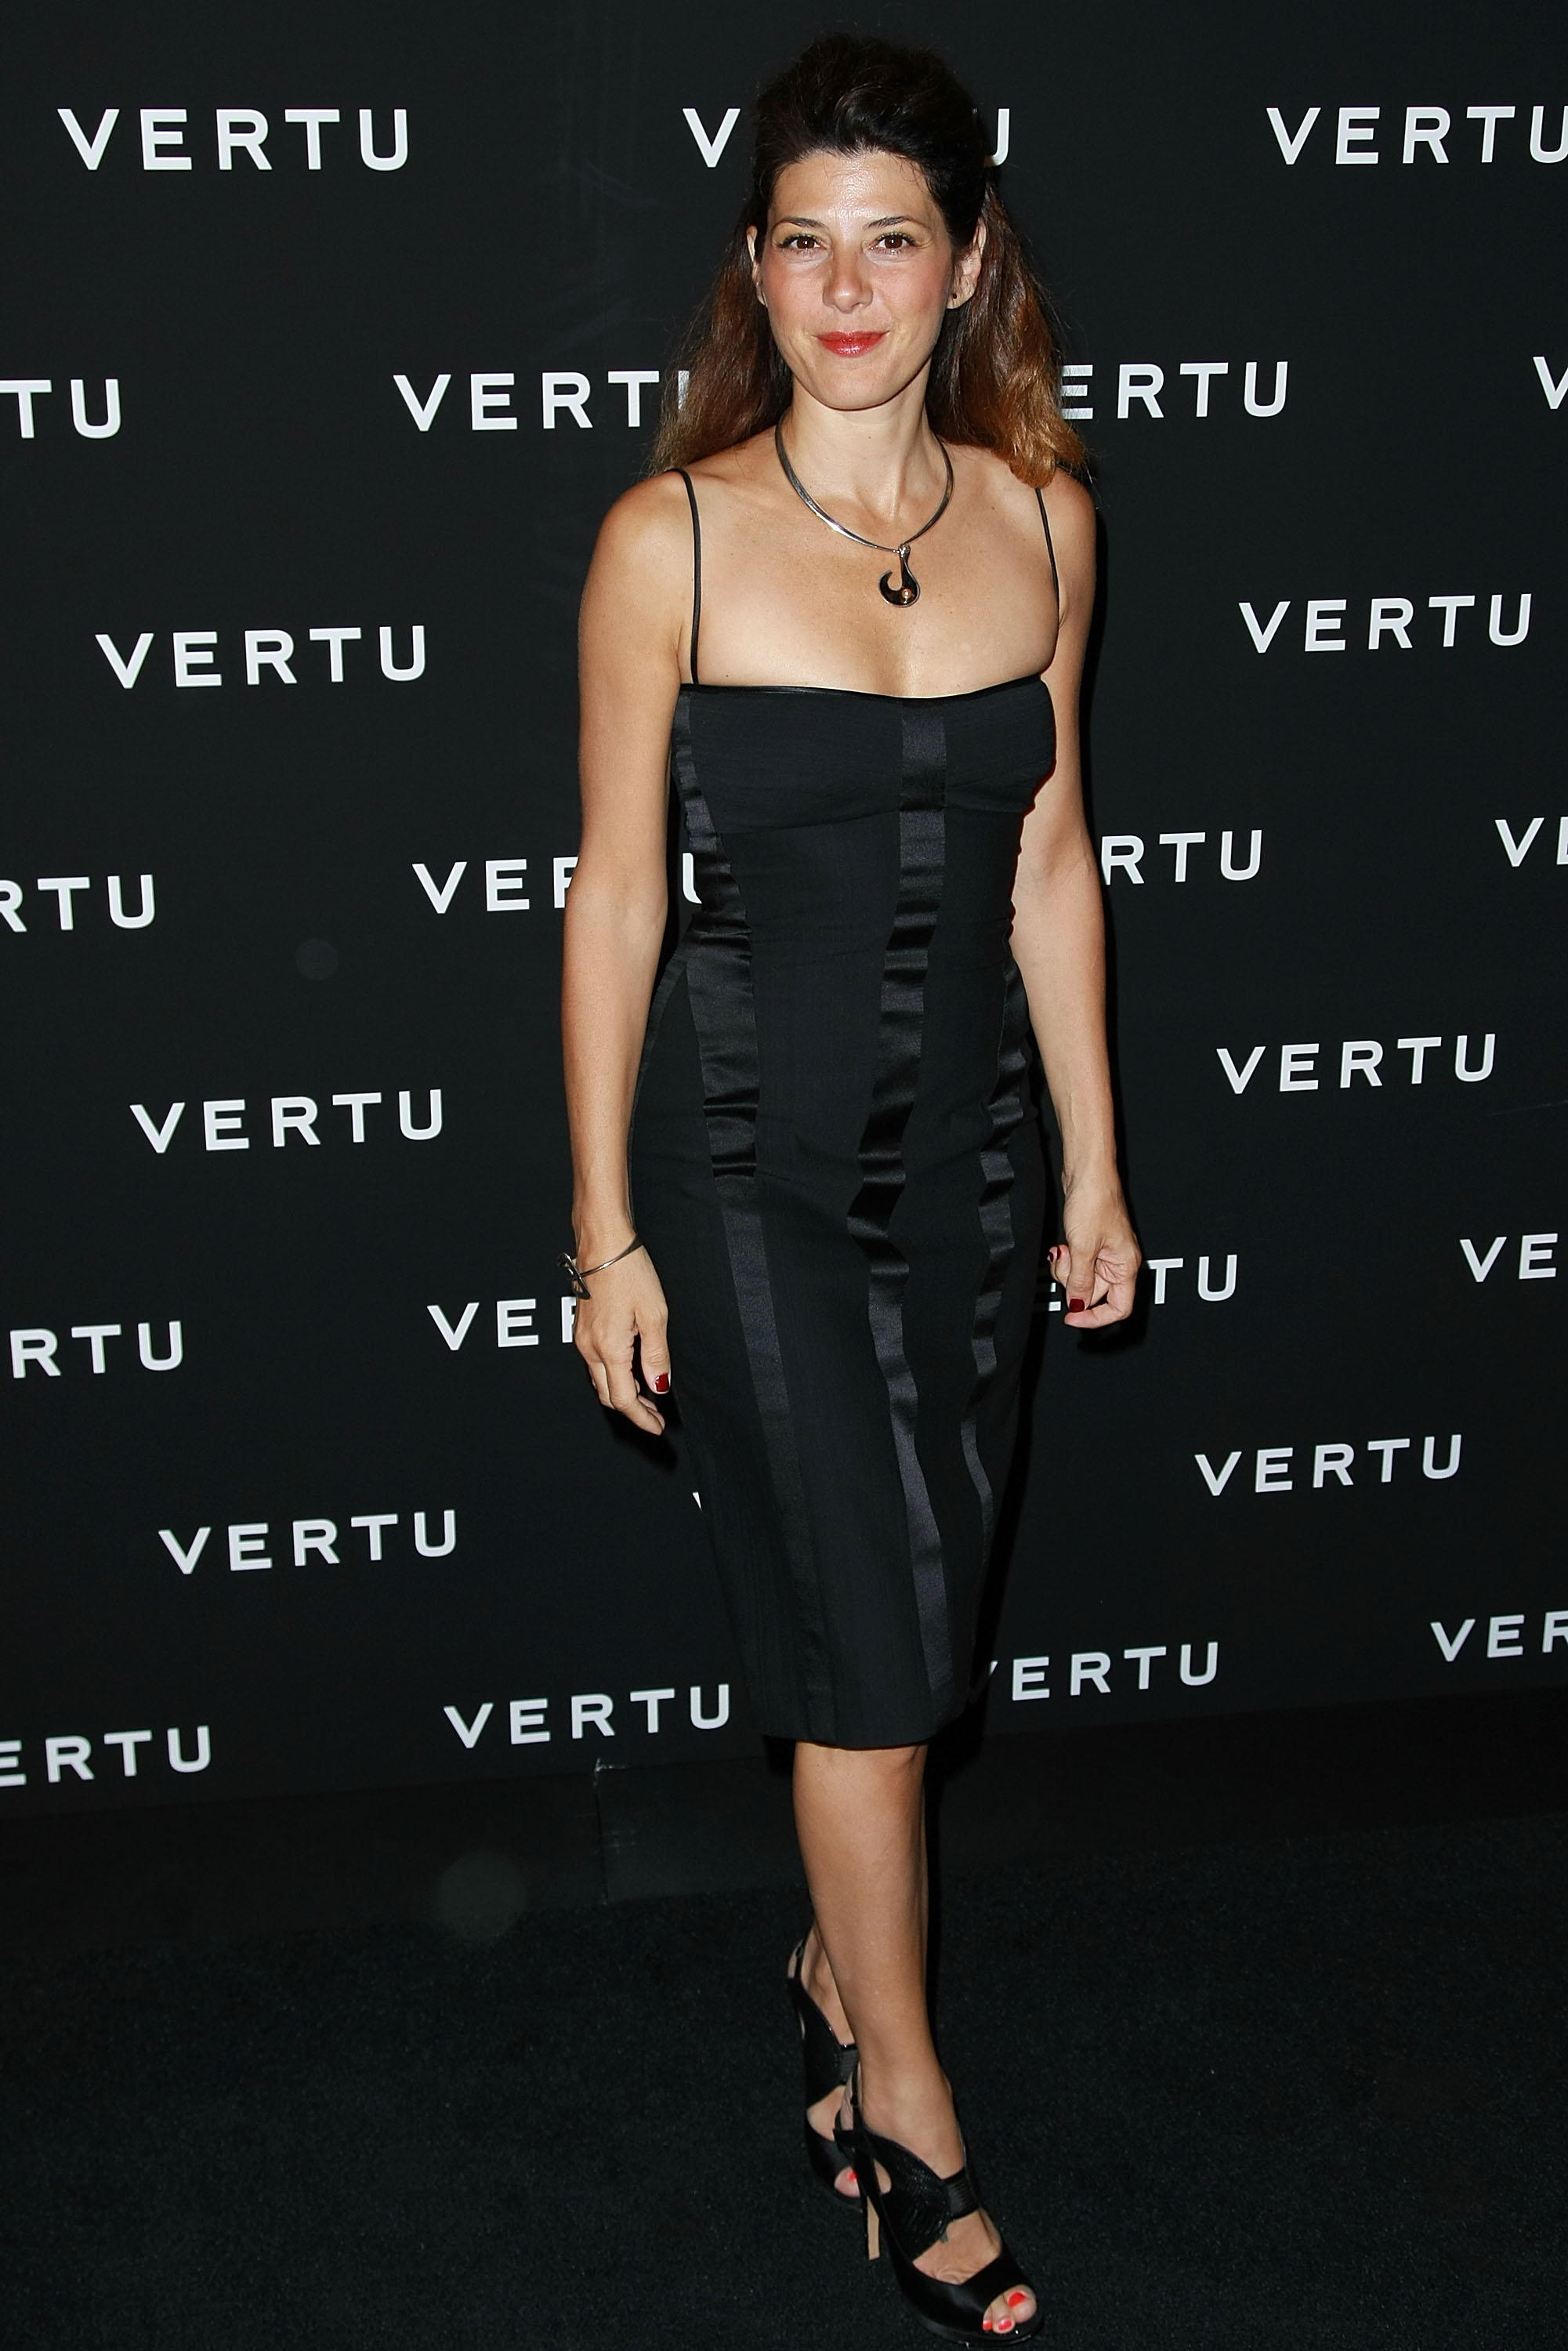 17697_Celebutopia-Marisa_Tomei-U.S._launch_of_Vertu16s_Signature_phone-02_122_172lo.jpg